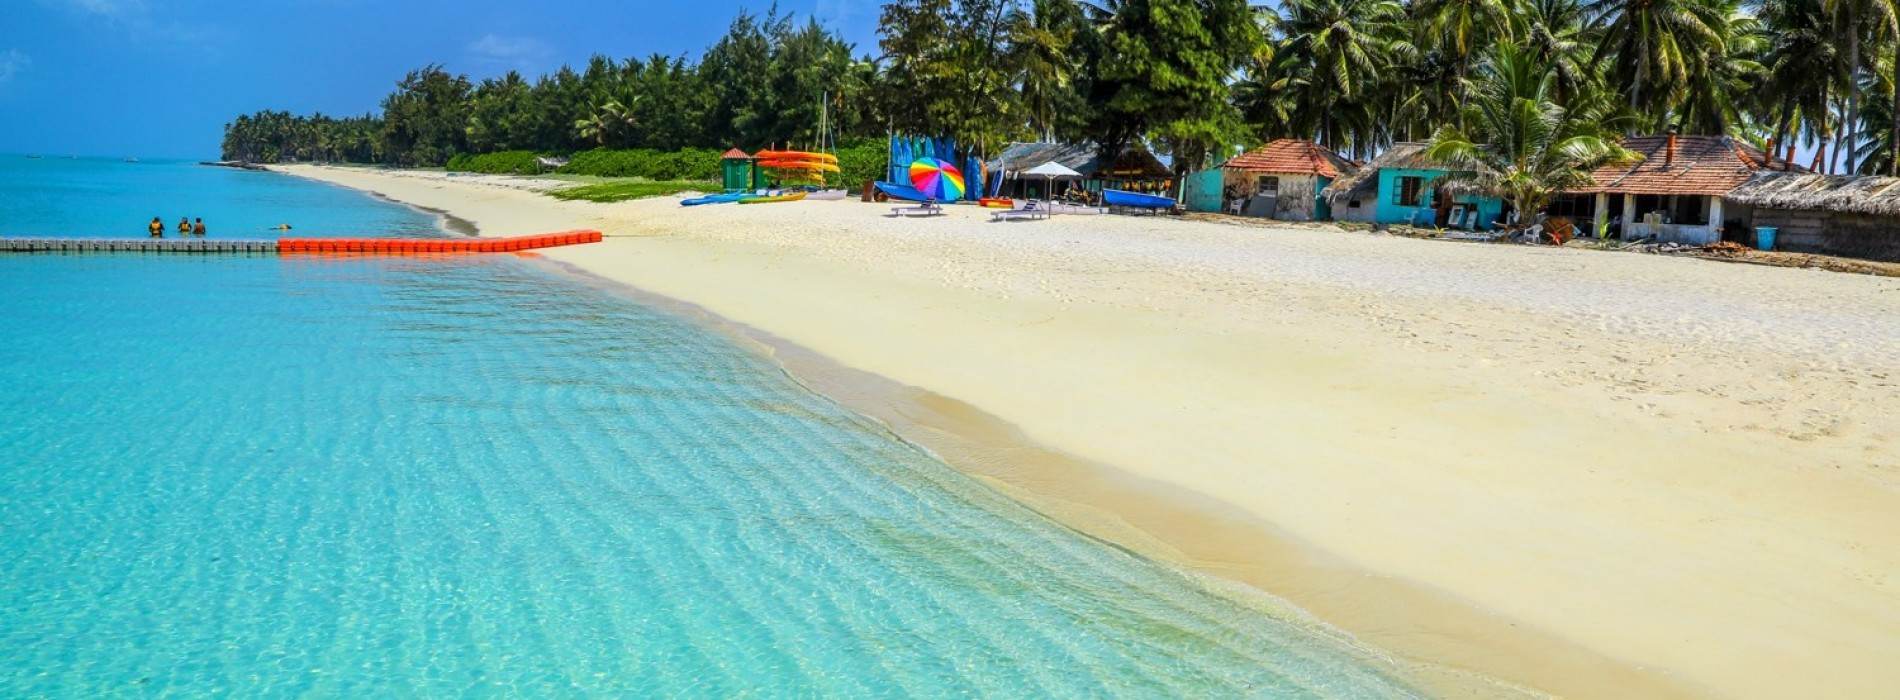 12 Lakshadweep islands to open up for tourists